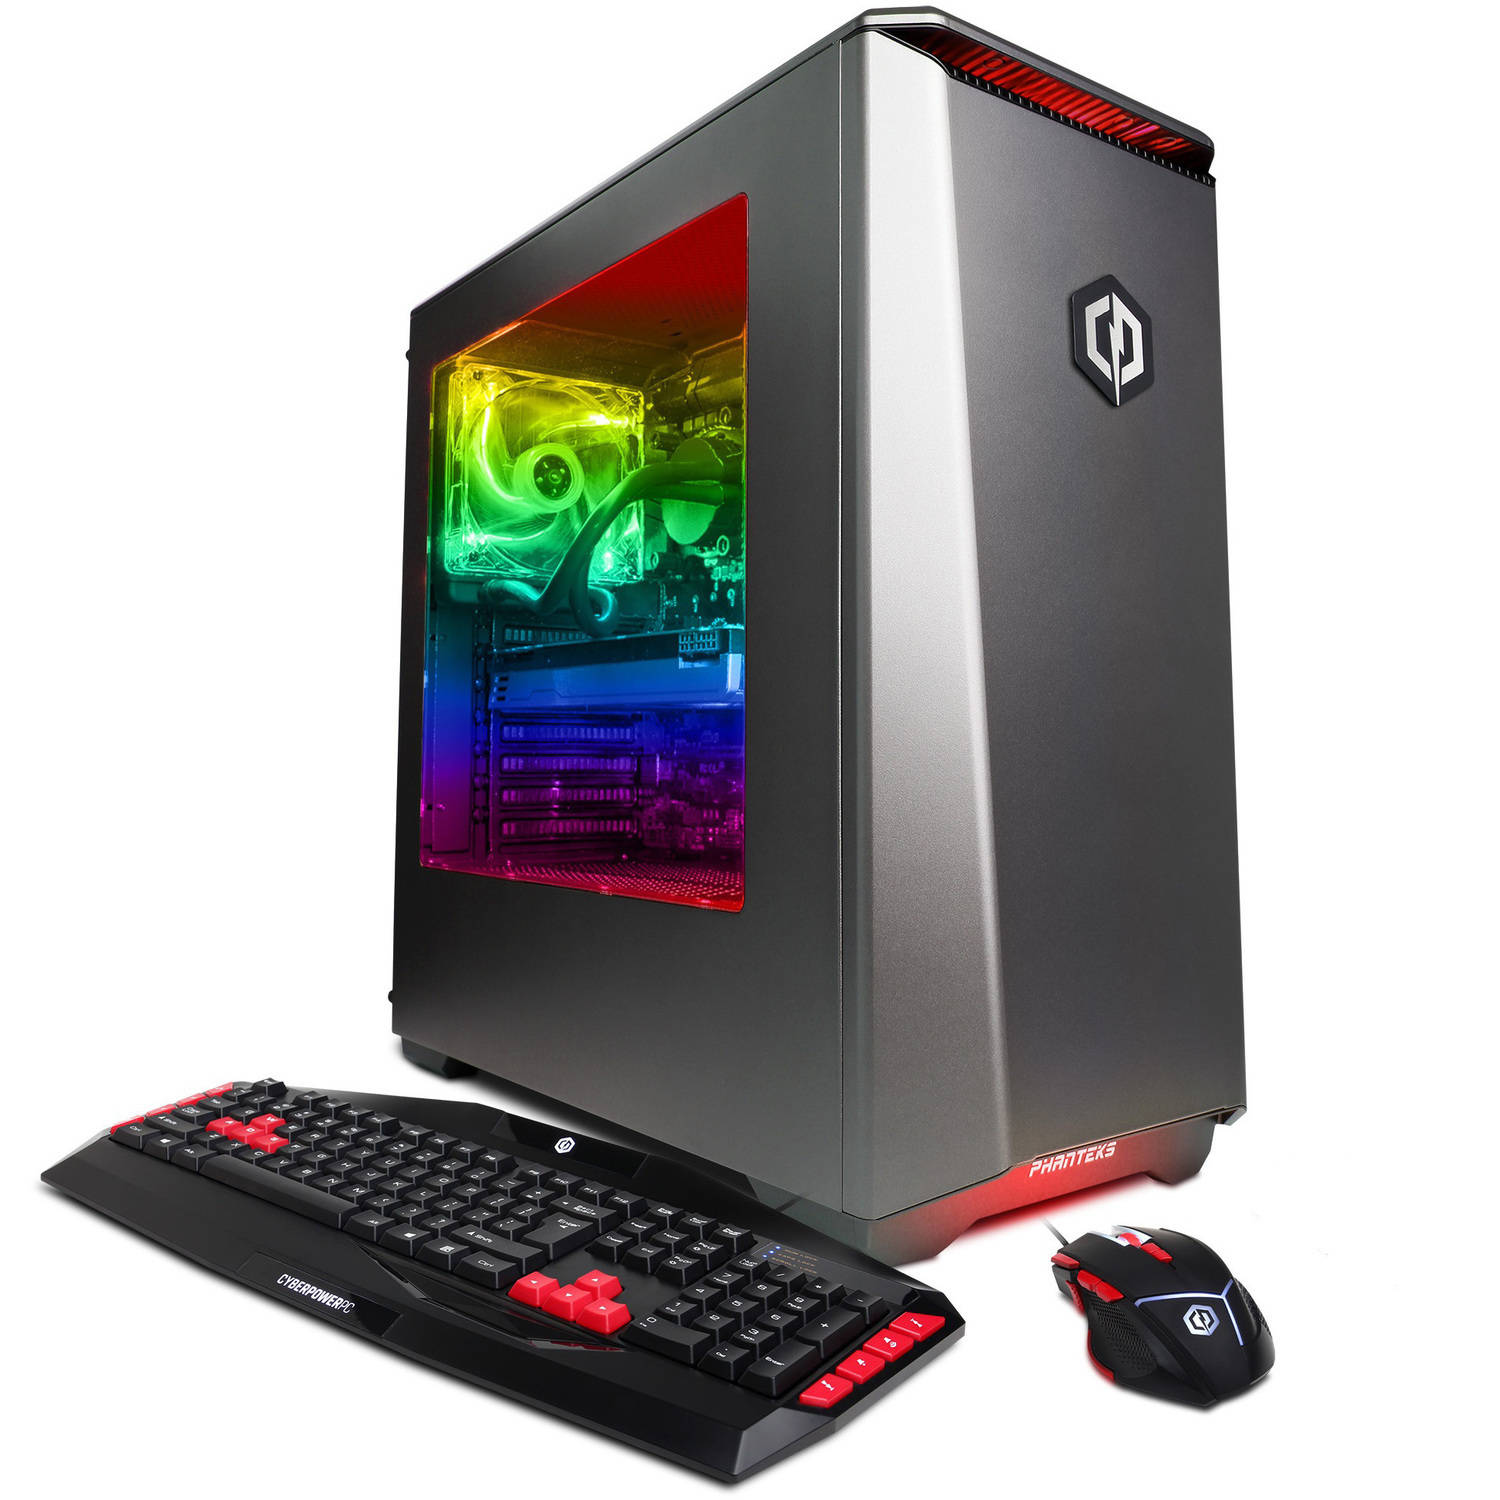 CyberPowerPC Gamer Supreme Liquid Cool SLC8360W Gaming Desktop PC with Intel Core i7-6800K Processor, 16GB Memory, 2TB Hard Drive and Windows 10 Home (Monitor Not Included)